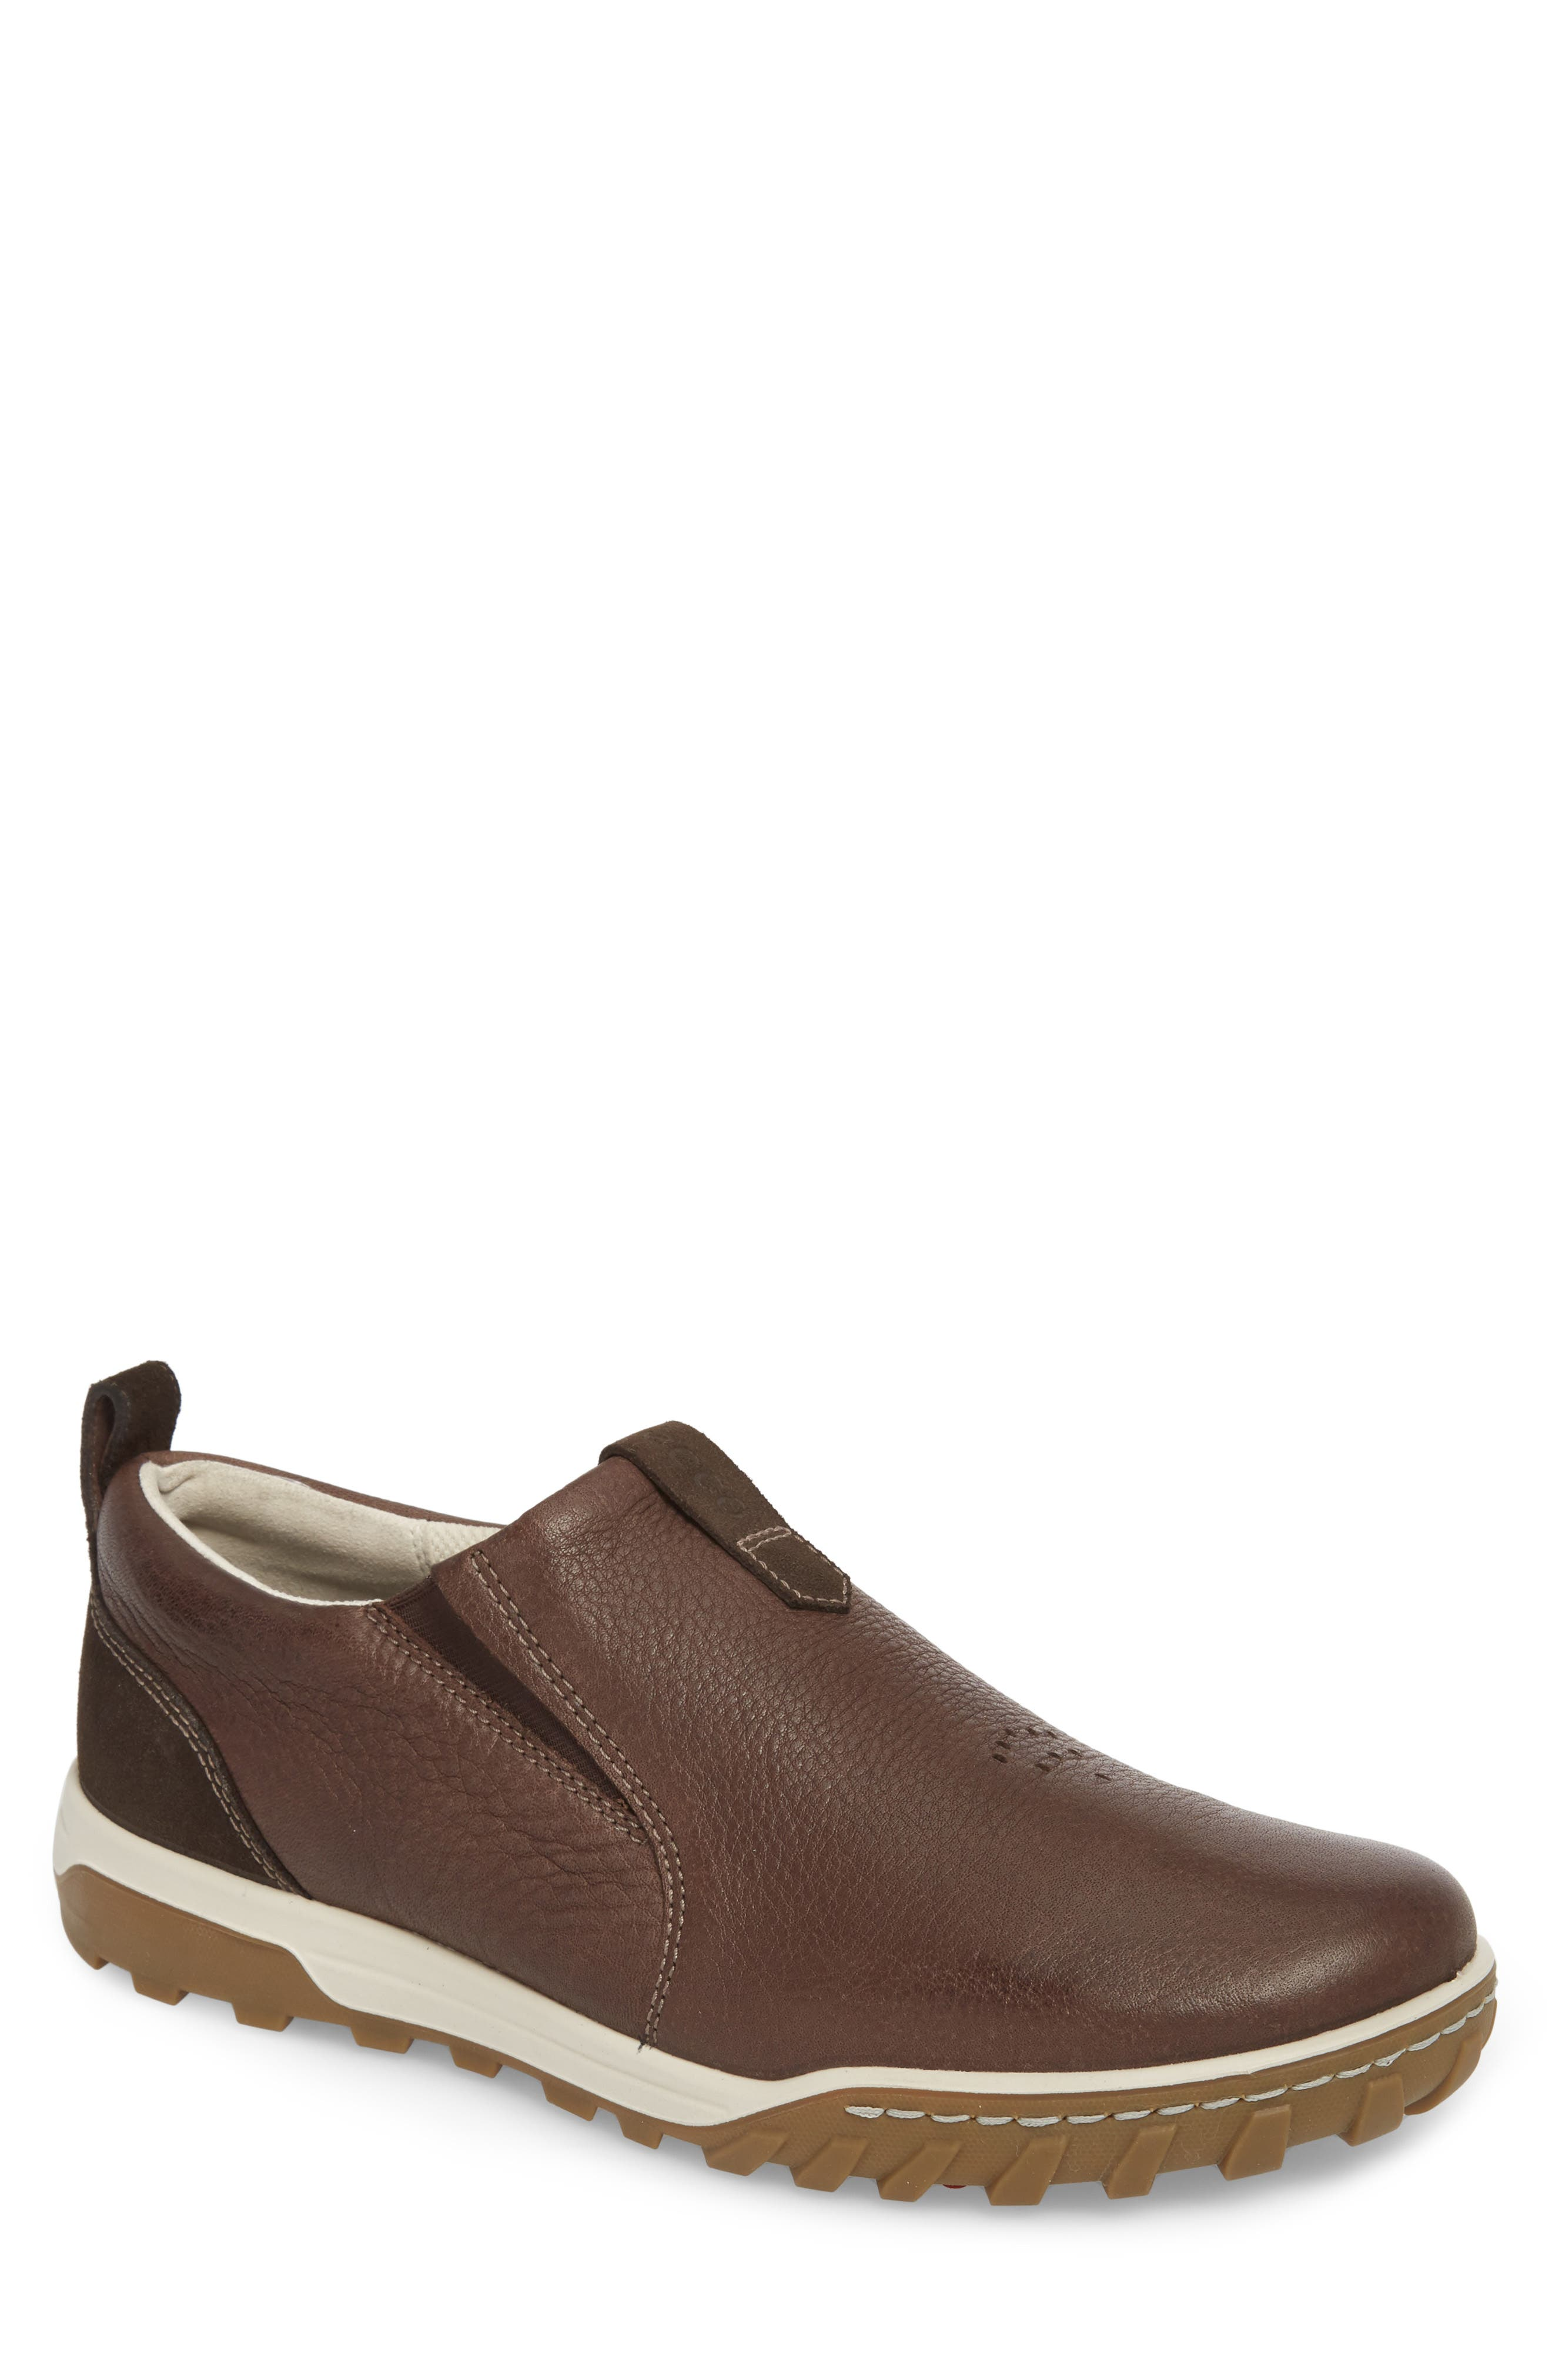 Urban Lifestyle Slip-On Sneaker,                         Main,                         color, Coffee Leather